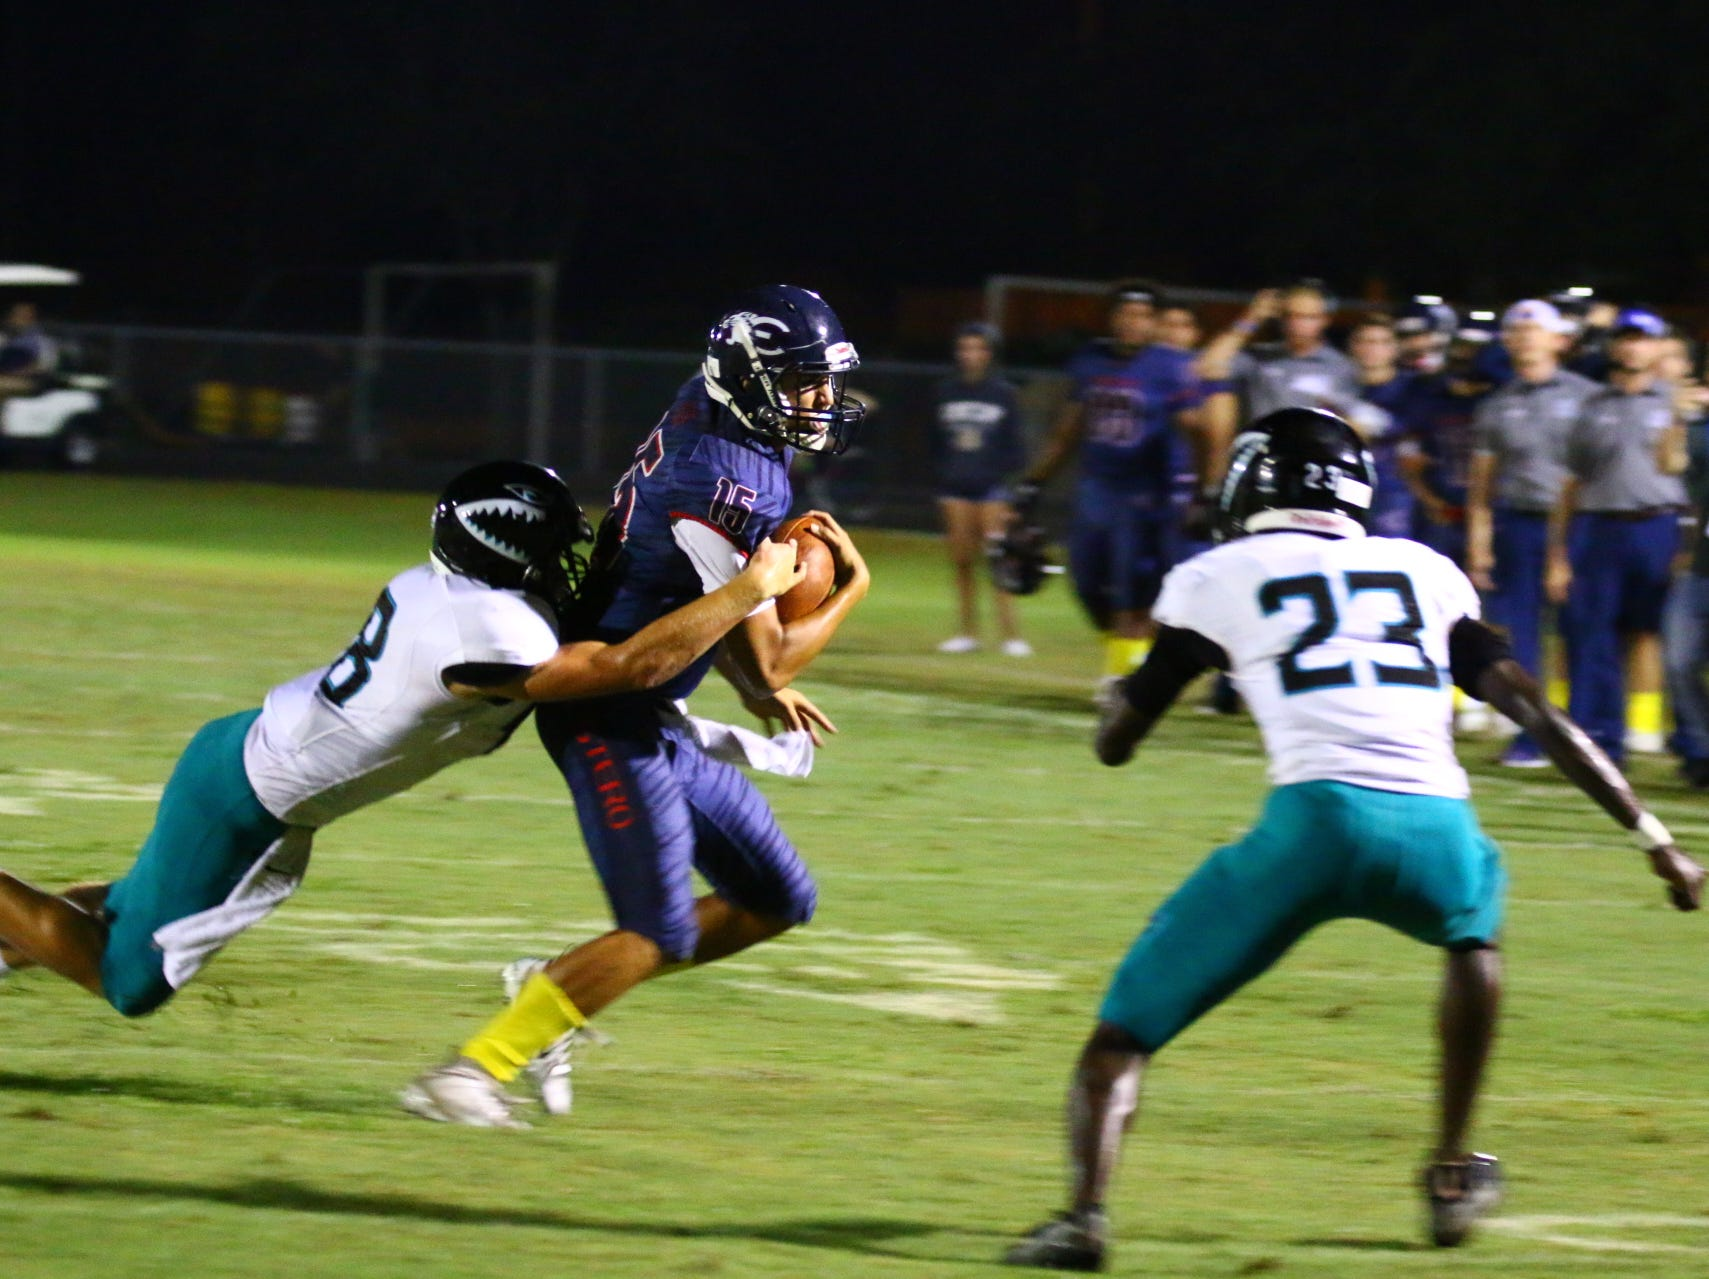 Gulf Coast visited Estero on Friday, Sept. 21 and picked up a high school football win.